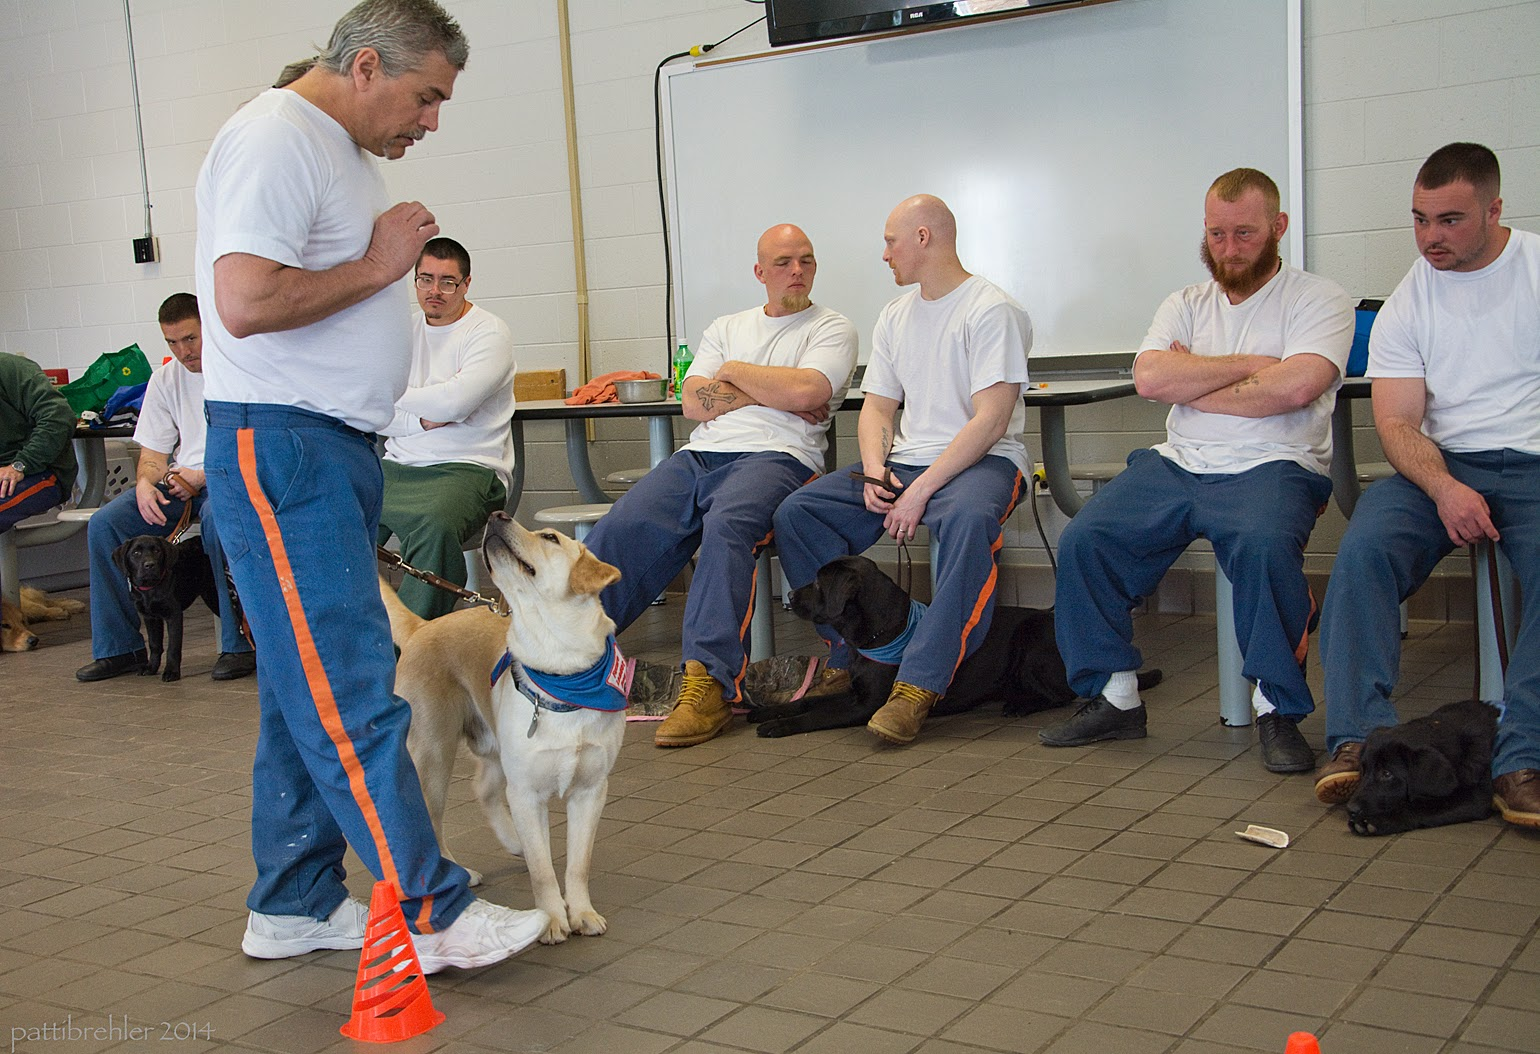 A man wearing the blue prison pants and a white t-shirt is walking by some orange cones on the tile floor with a yellow lab, who is wearing the blue Future Leader Dog bandana. The man is looking down at the puppy with his right hand in a fist up high on his chest. The puppy is slightly in front of the man, looking up at his hand. The leash is fairly tight. There are six men sitting on the lunchroom table seats in the background, all are wearing white t-shirts and blue prison pants, except one man has green pants. There are three black lab puppies underneath three of the men. The puppy on the far left is standing, the other two are lying down. There is also a chew toy on the floor in front of the puppy on the right.